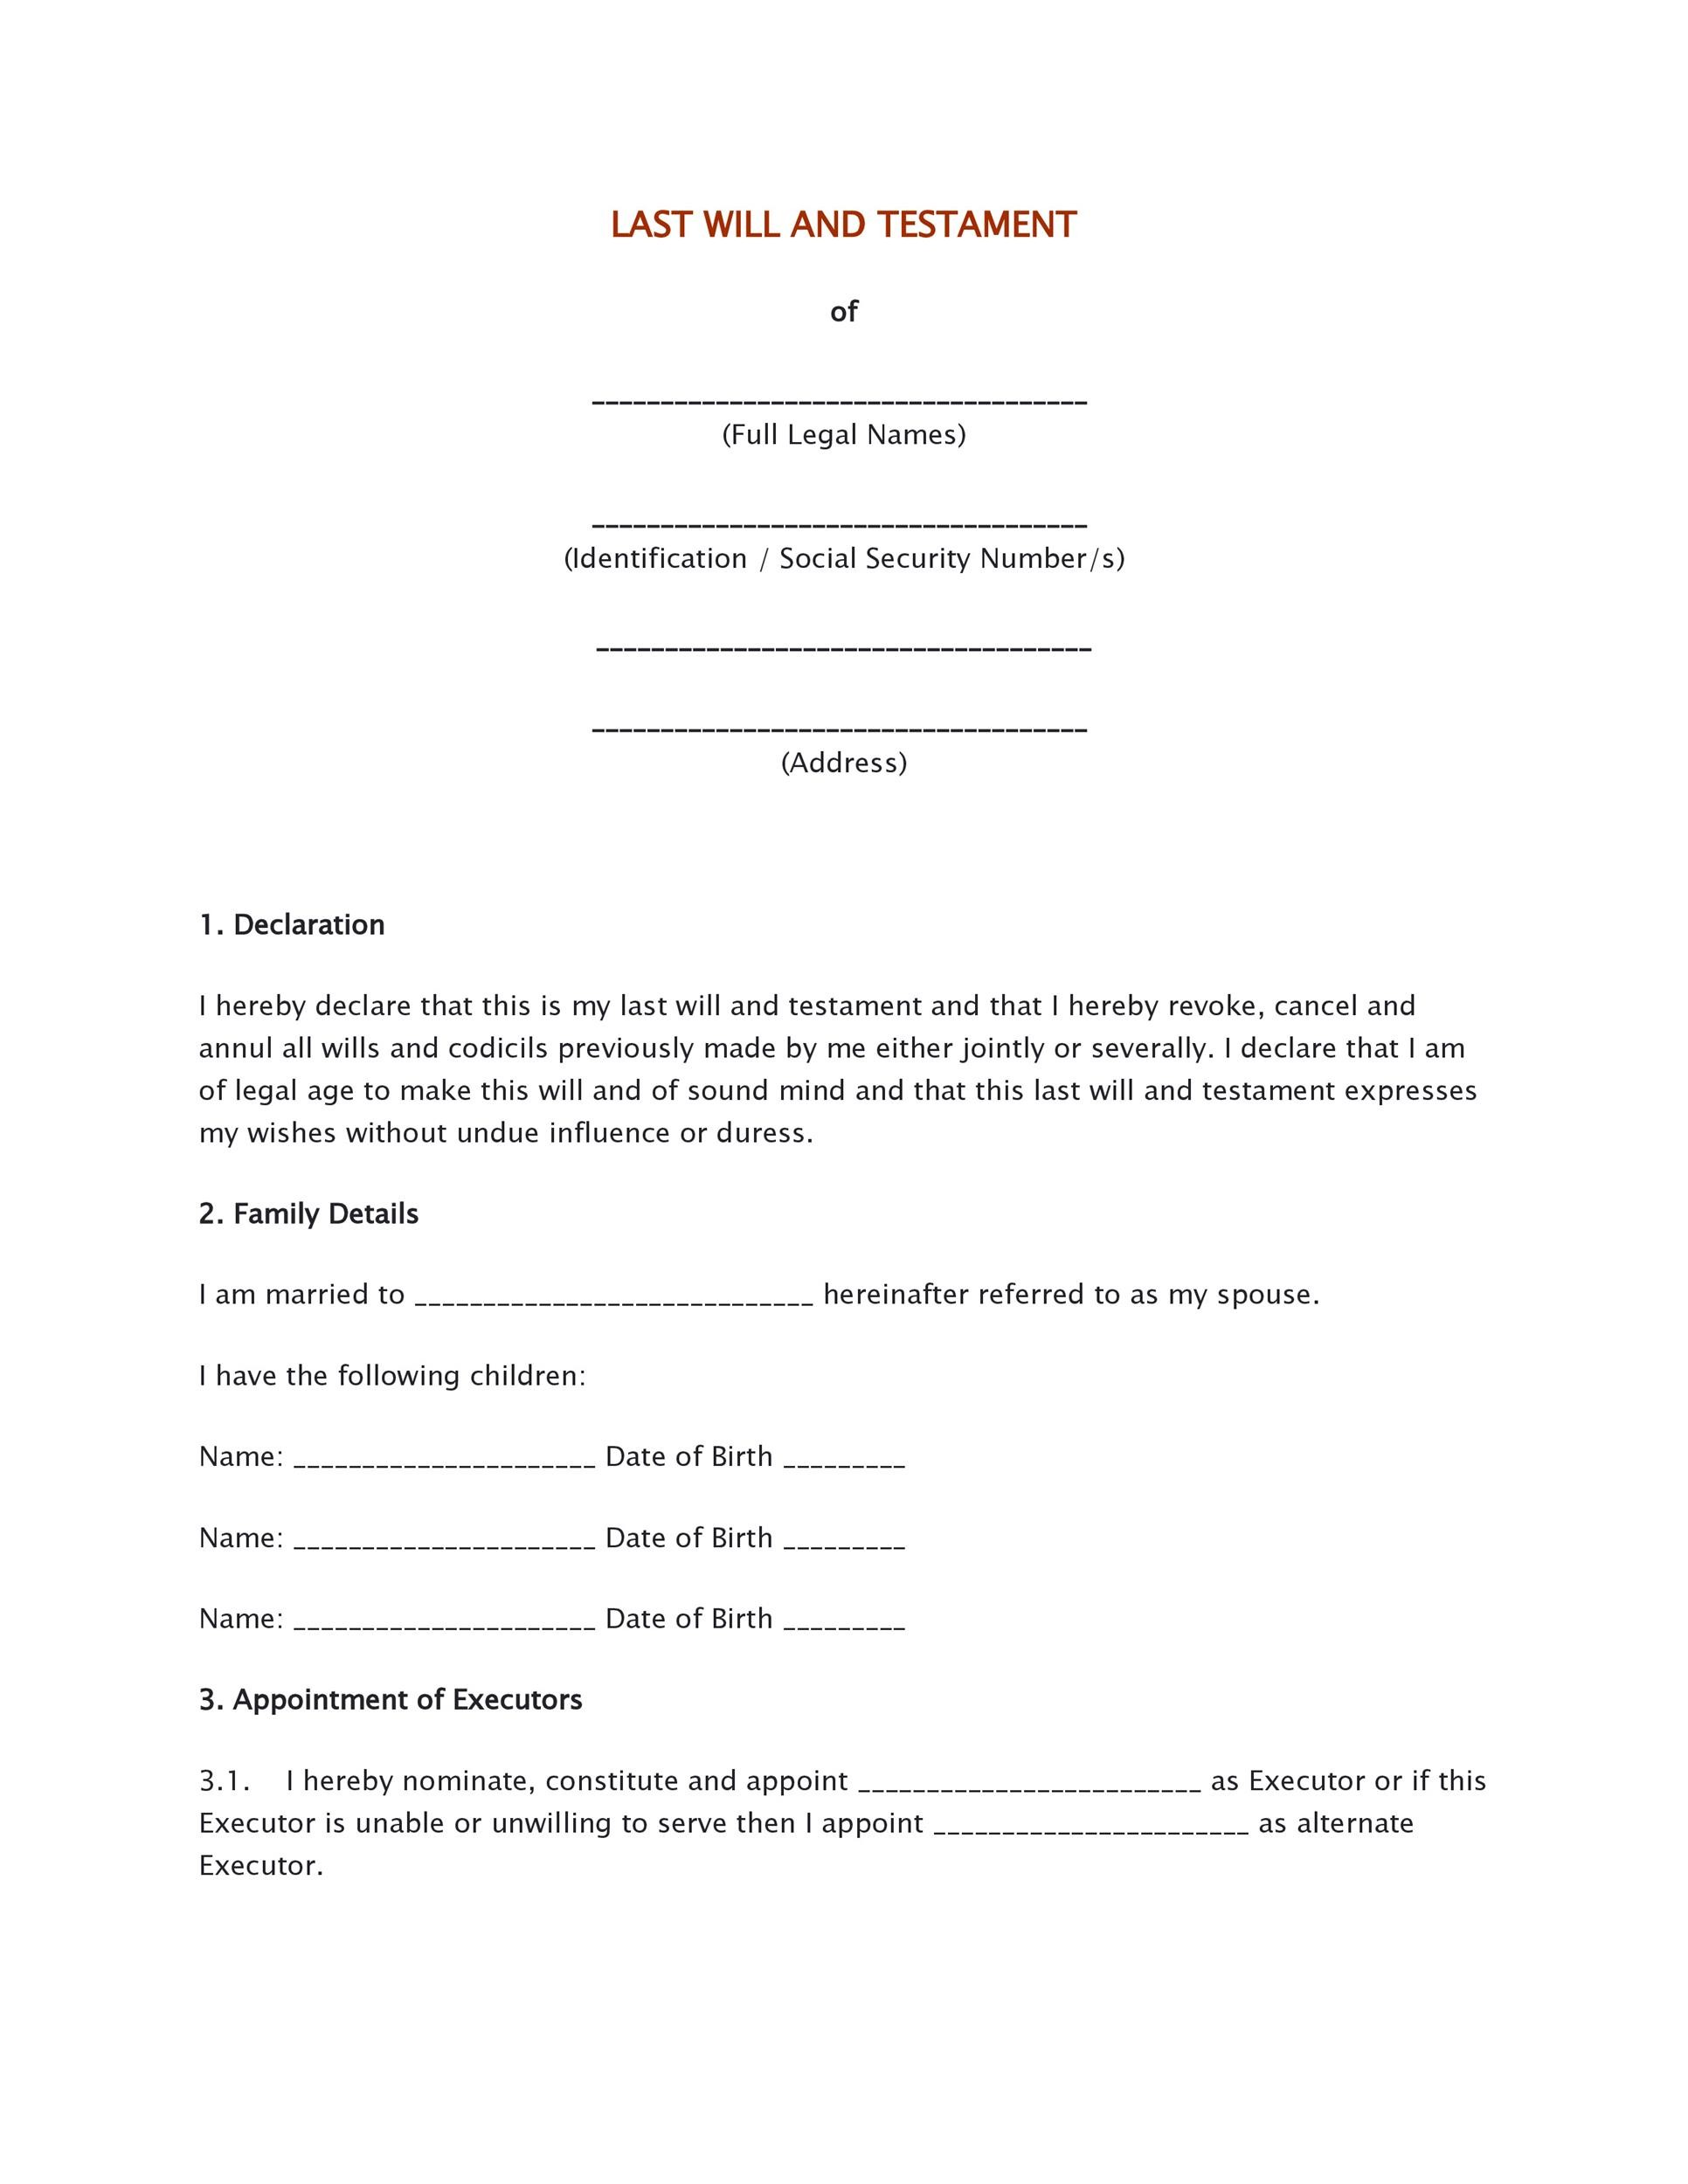 Last Will And Testament Templa - Best Resumes